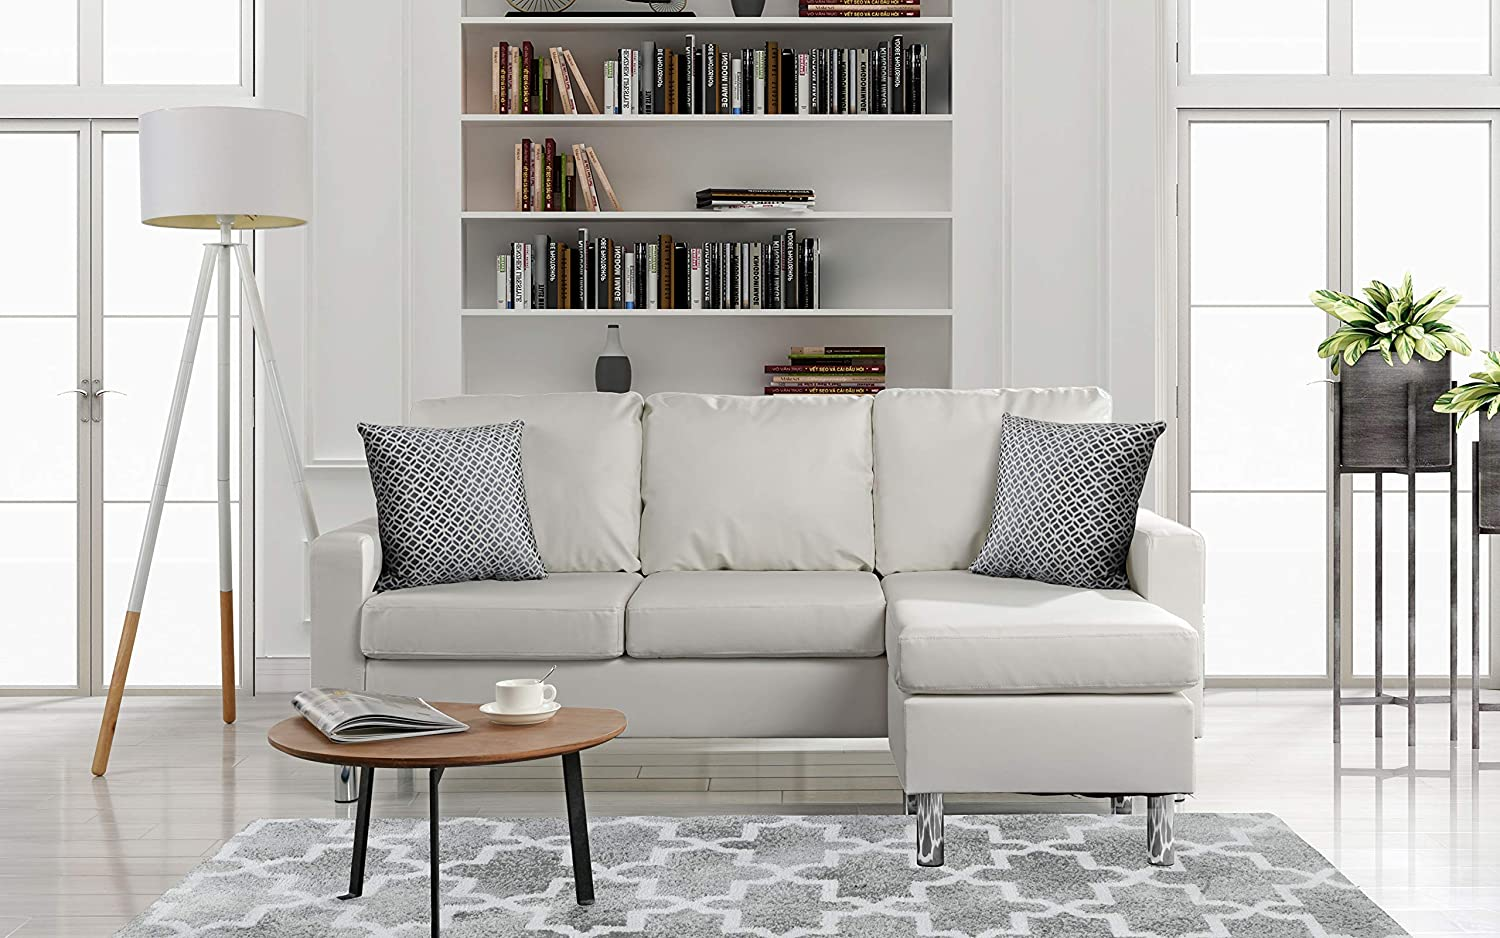 Strange Details About Modern Bonded Leather Sectional Sofa Small Space Configurable Couch White Machost Co Dining Chair Design Ideas Machostcouk